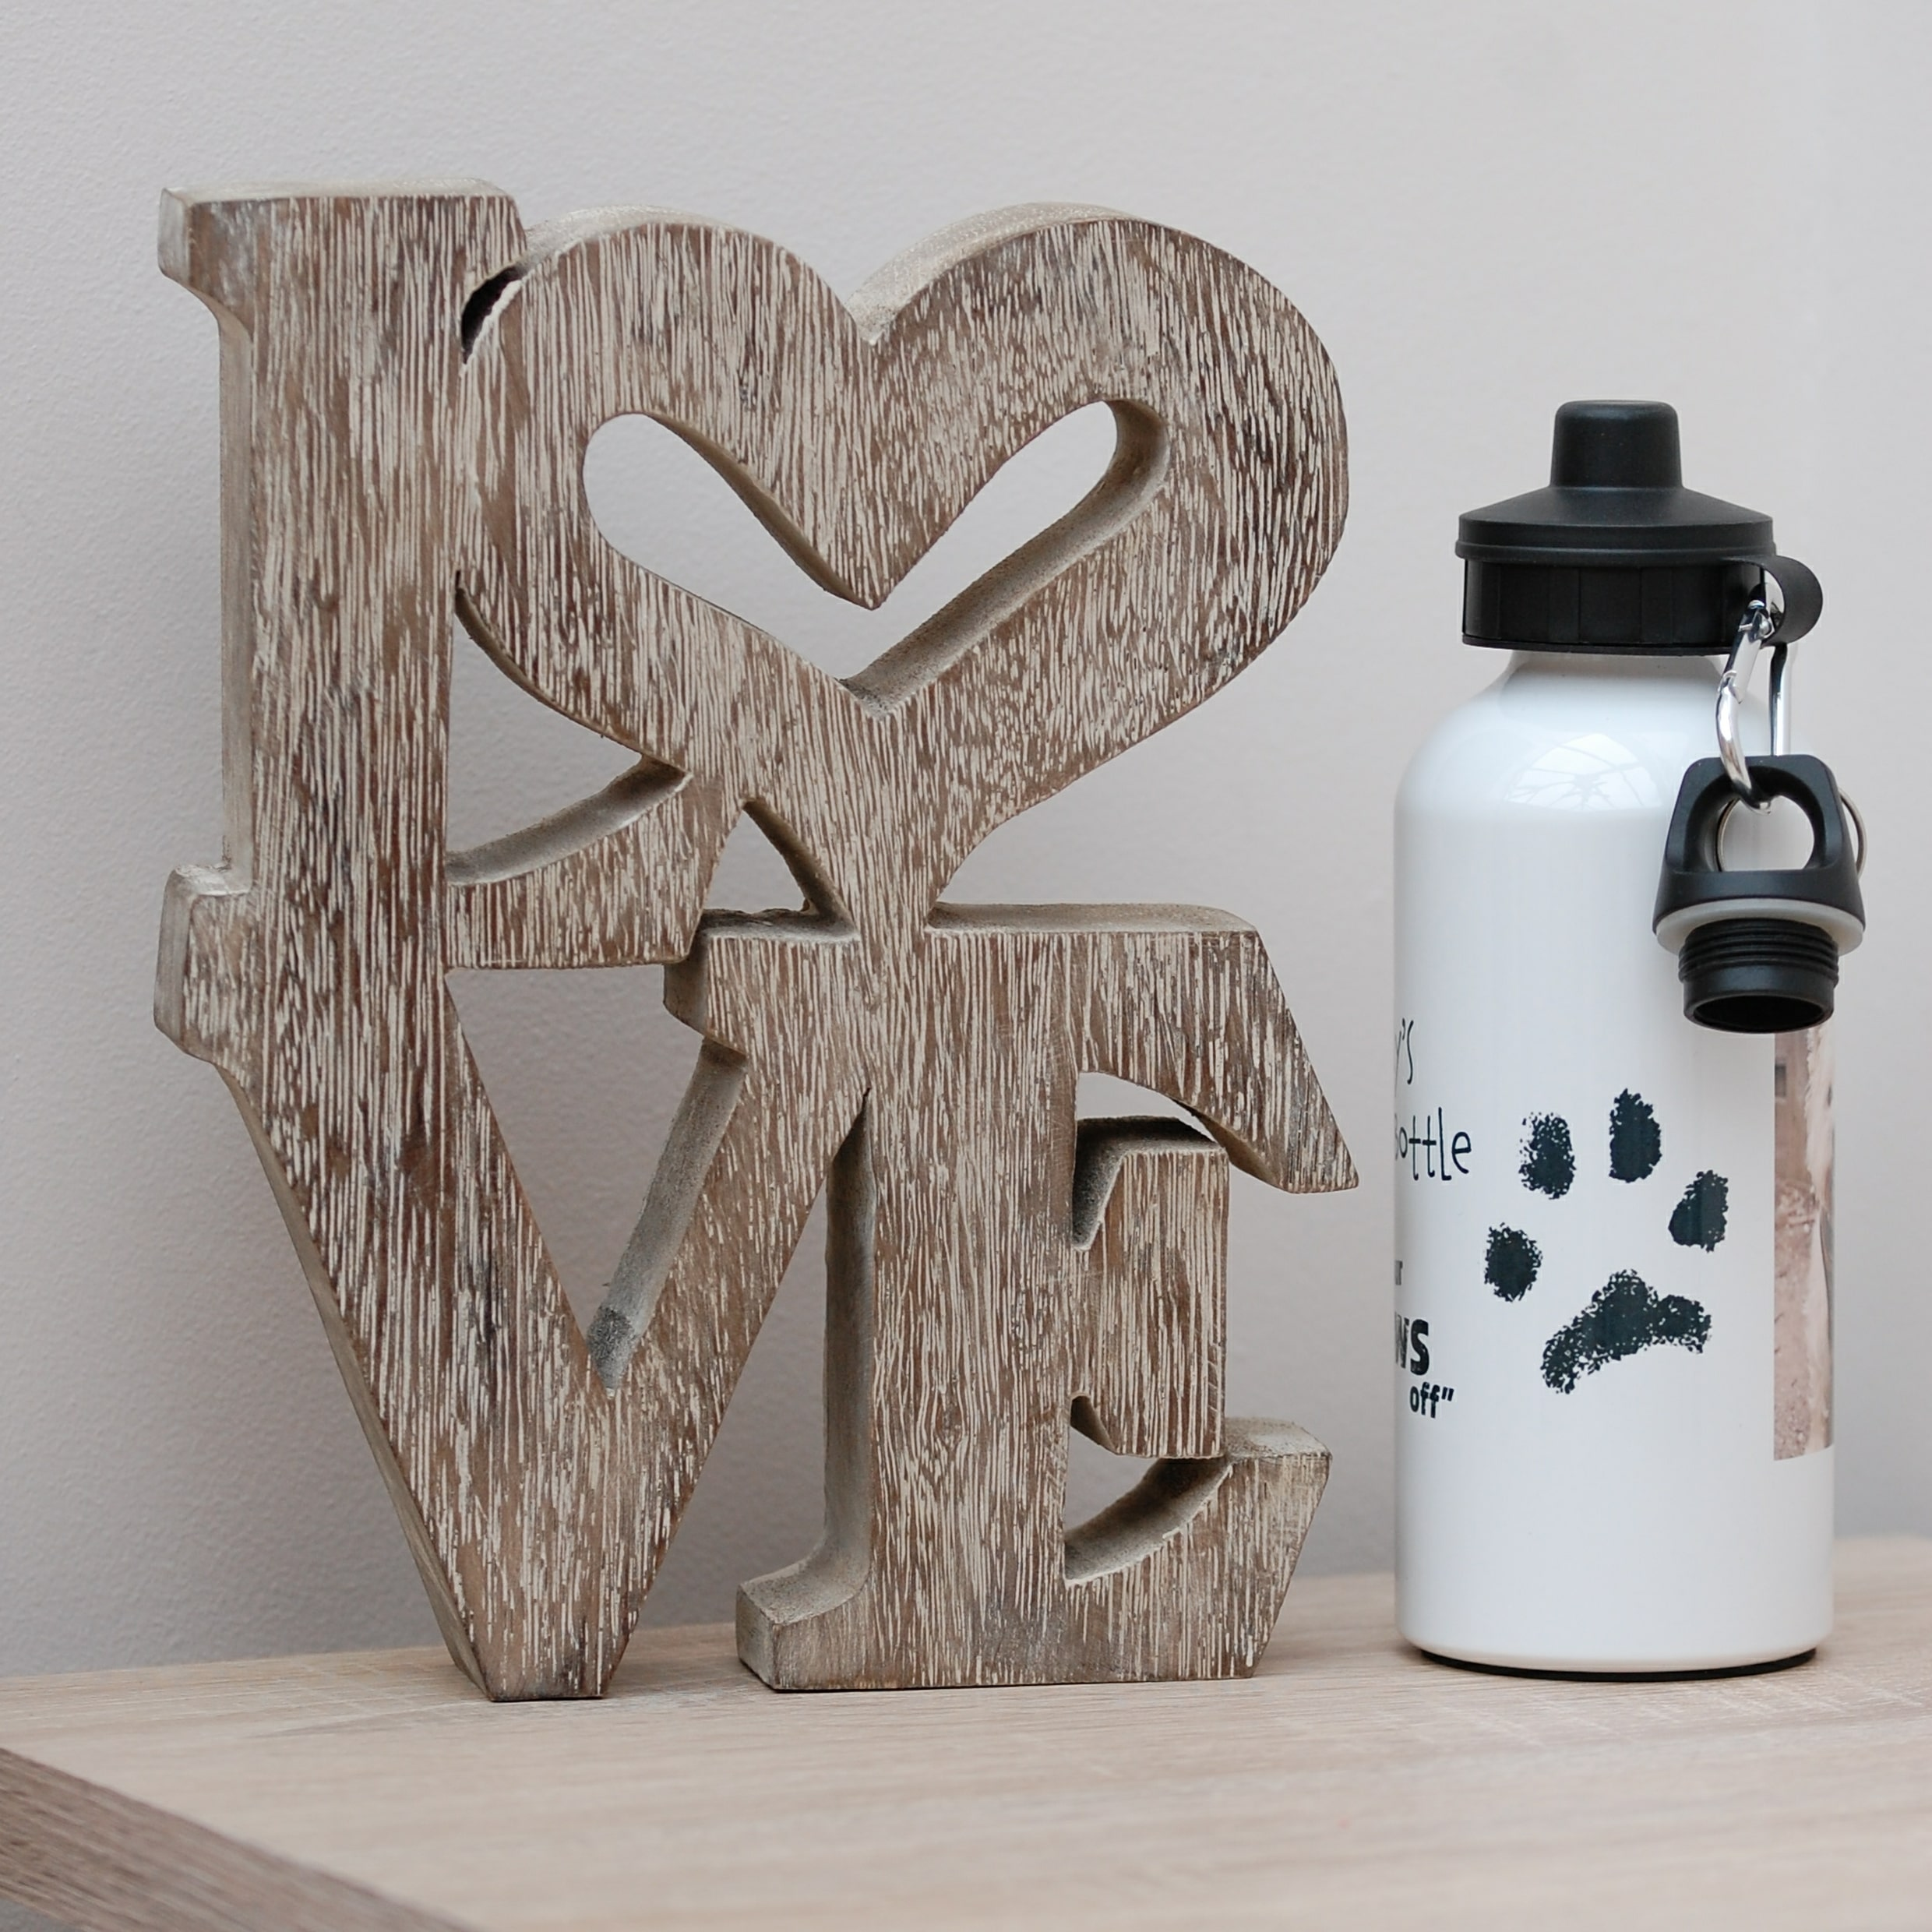 Water bottle personalised with your pet's paw print, photo and message, great for preventing dehydration in dogs